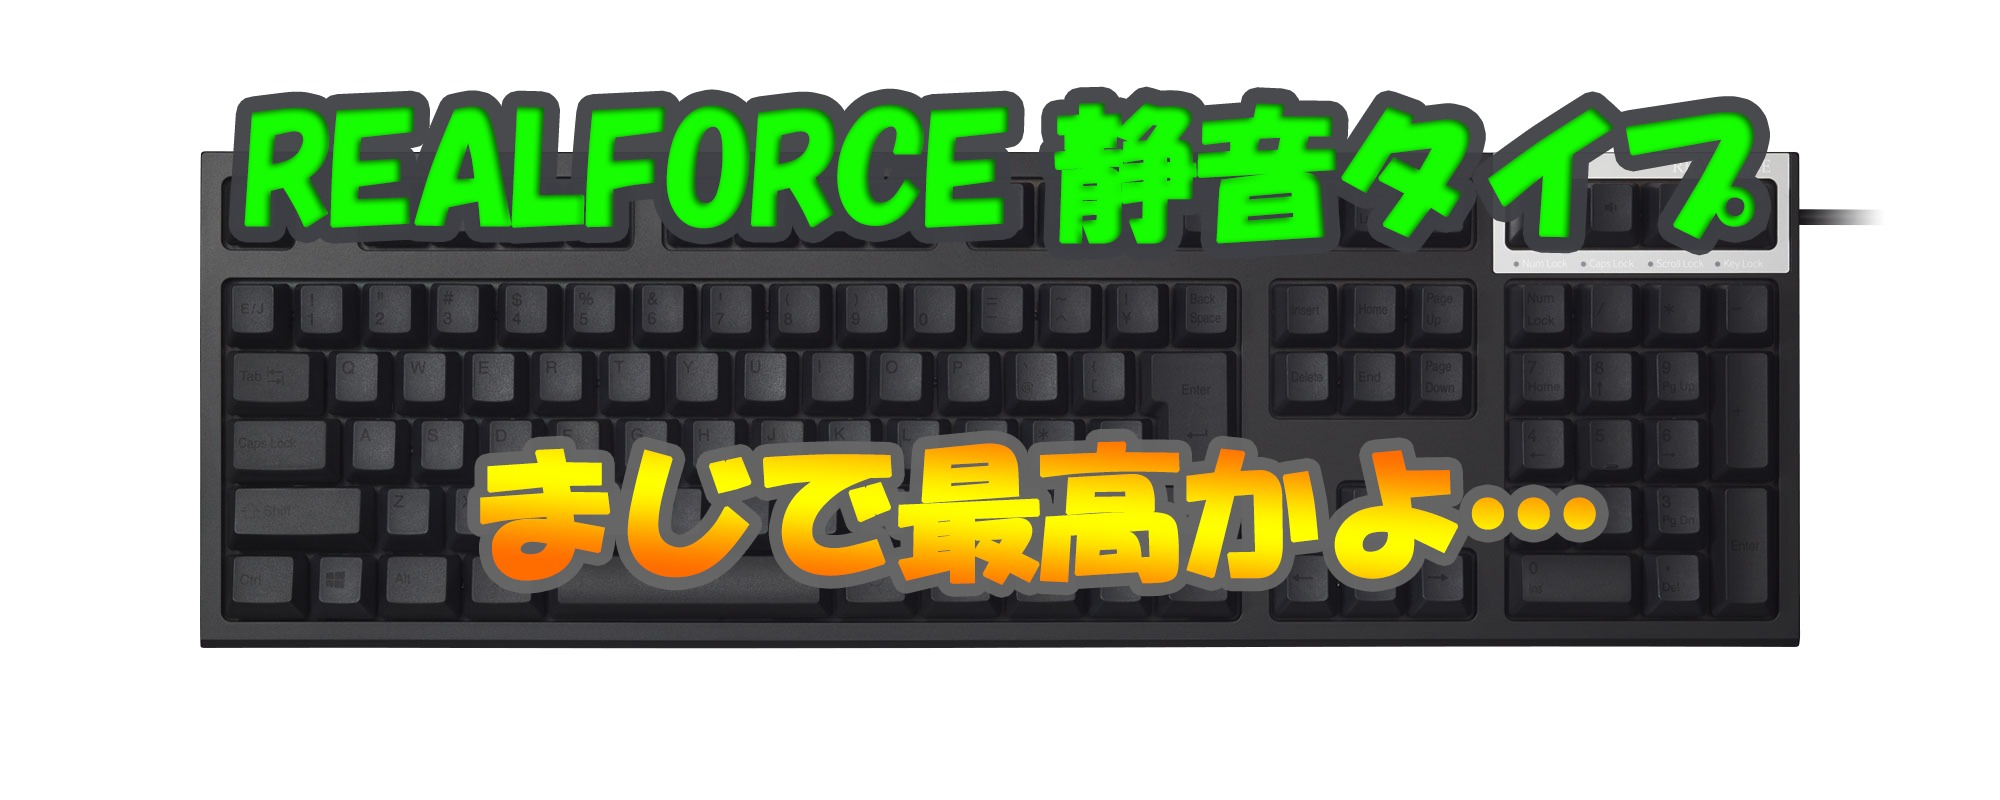 REALFORCE 静音 サムネイル